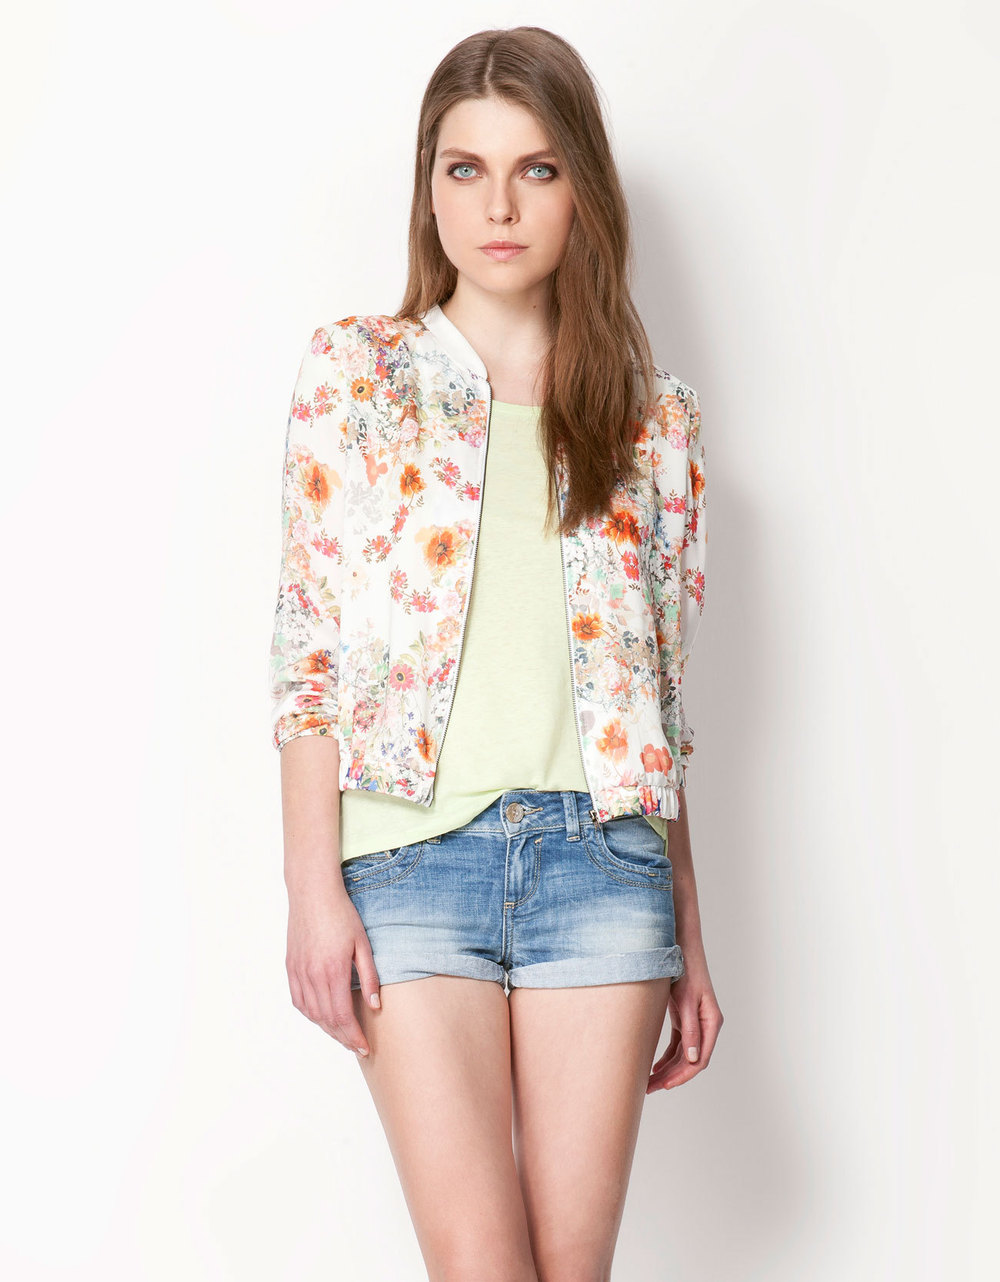 Printed Jackets For Womens - My Jacket